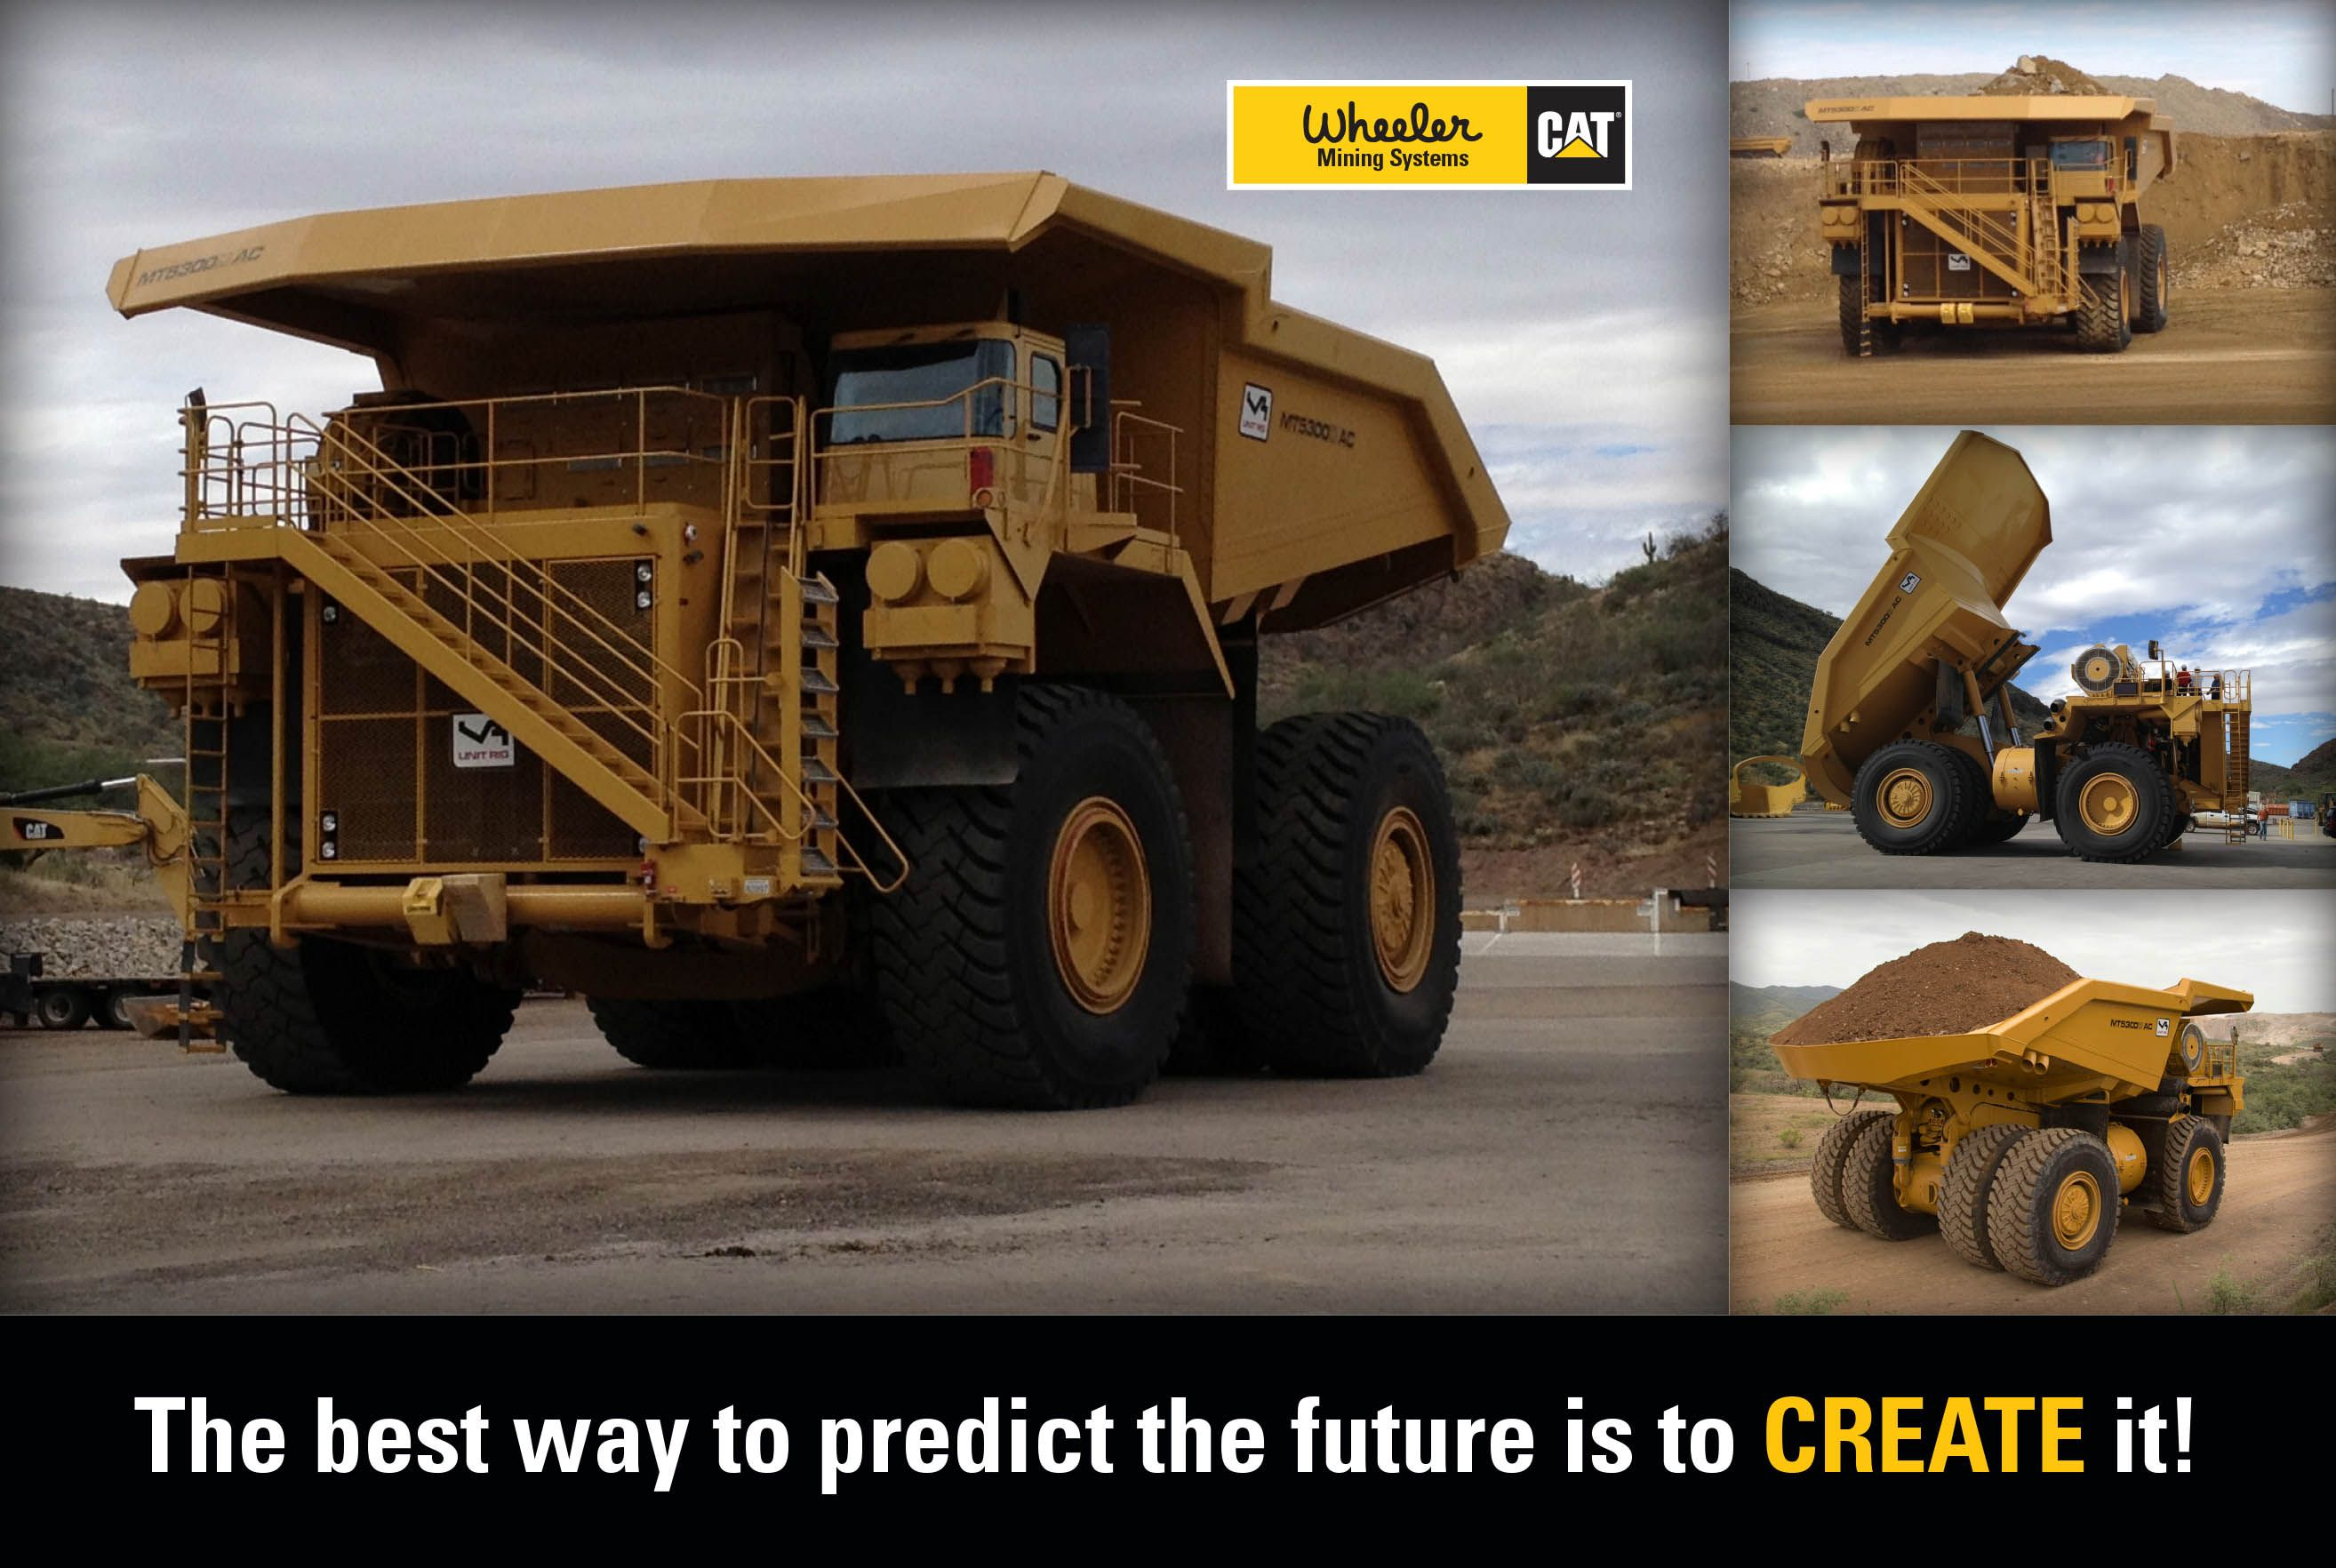 Cat releases its new 320 ton mt5300d haul truck with pilot models as early as 2013